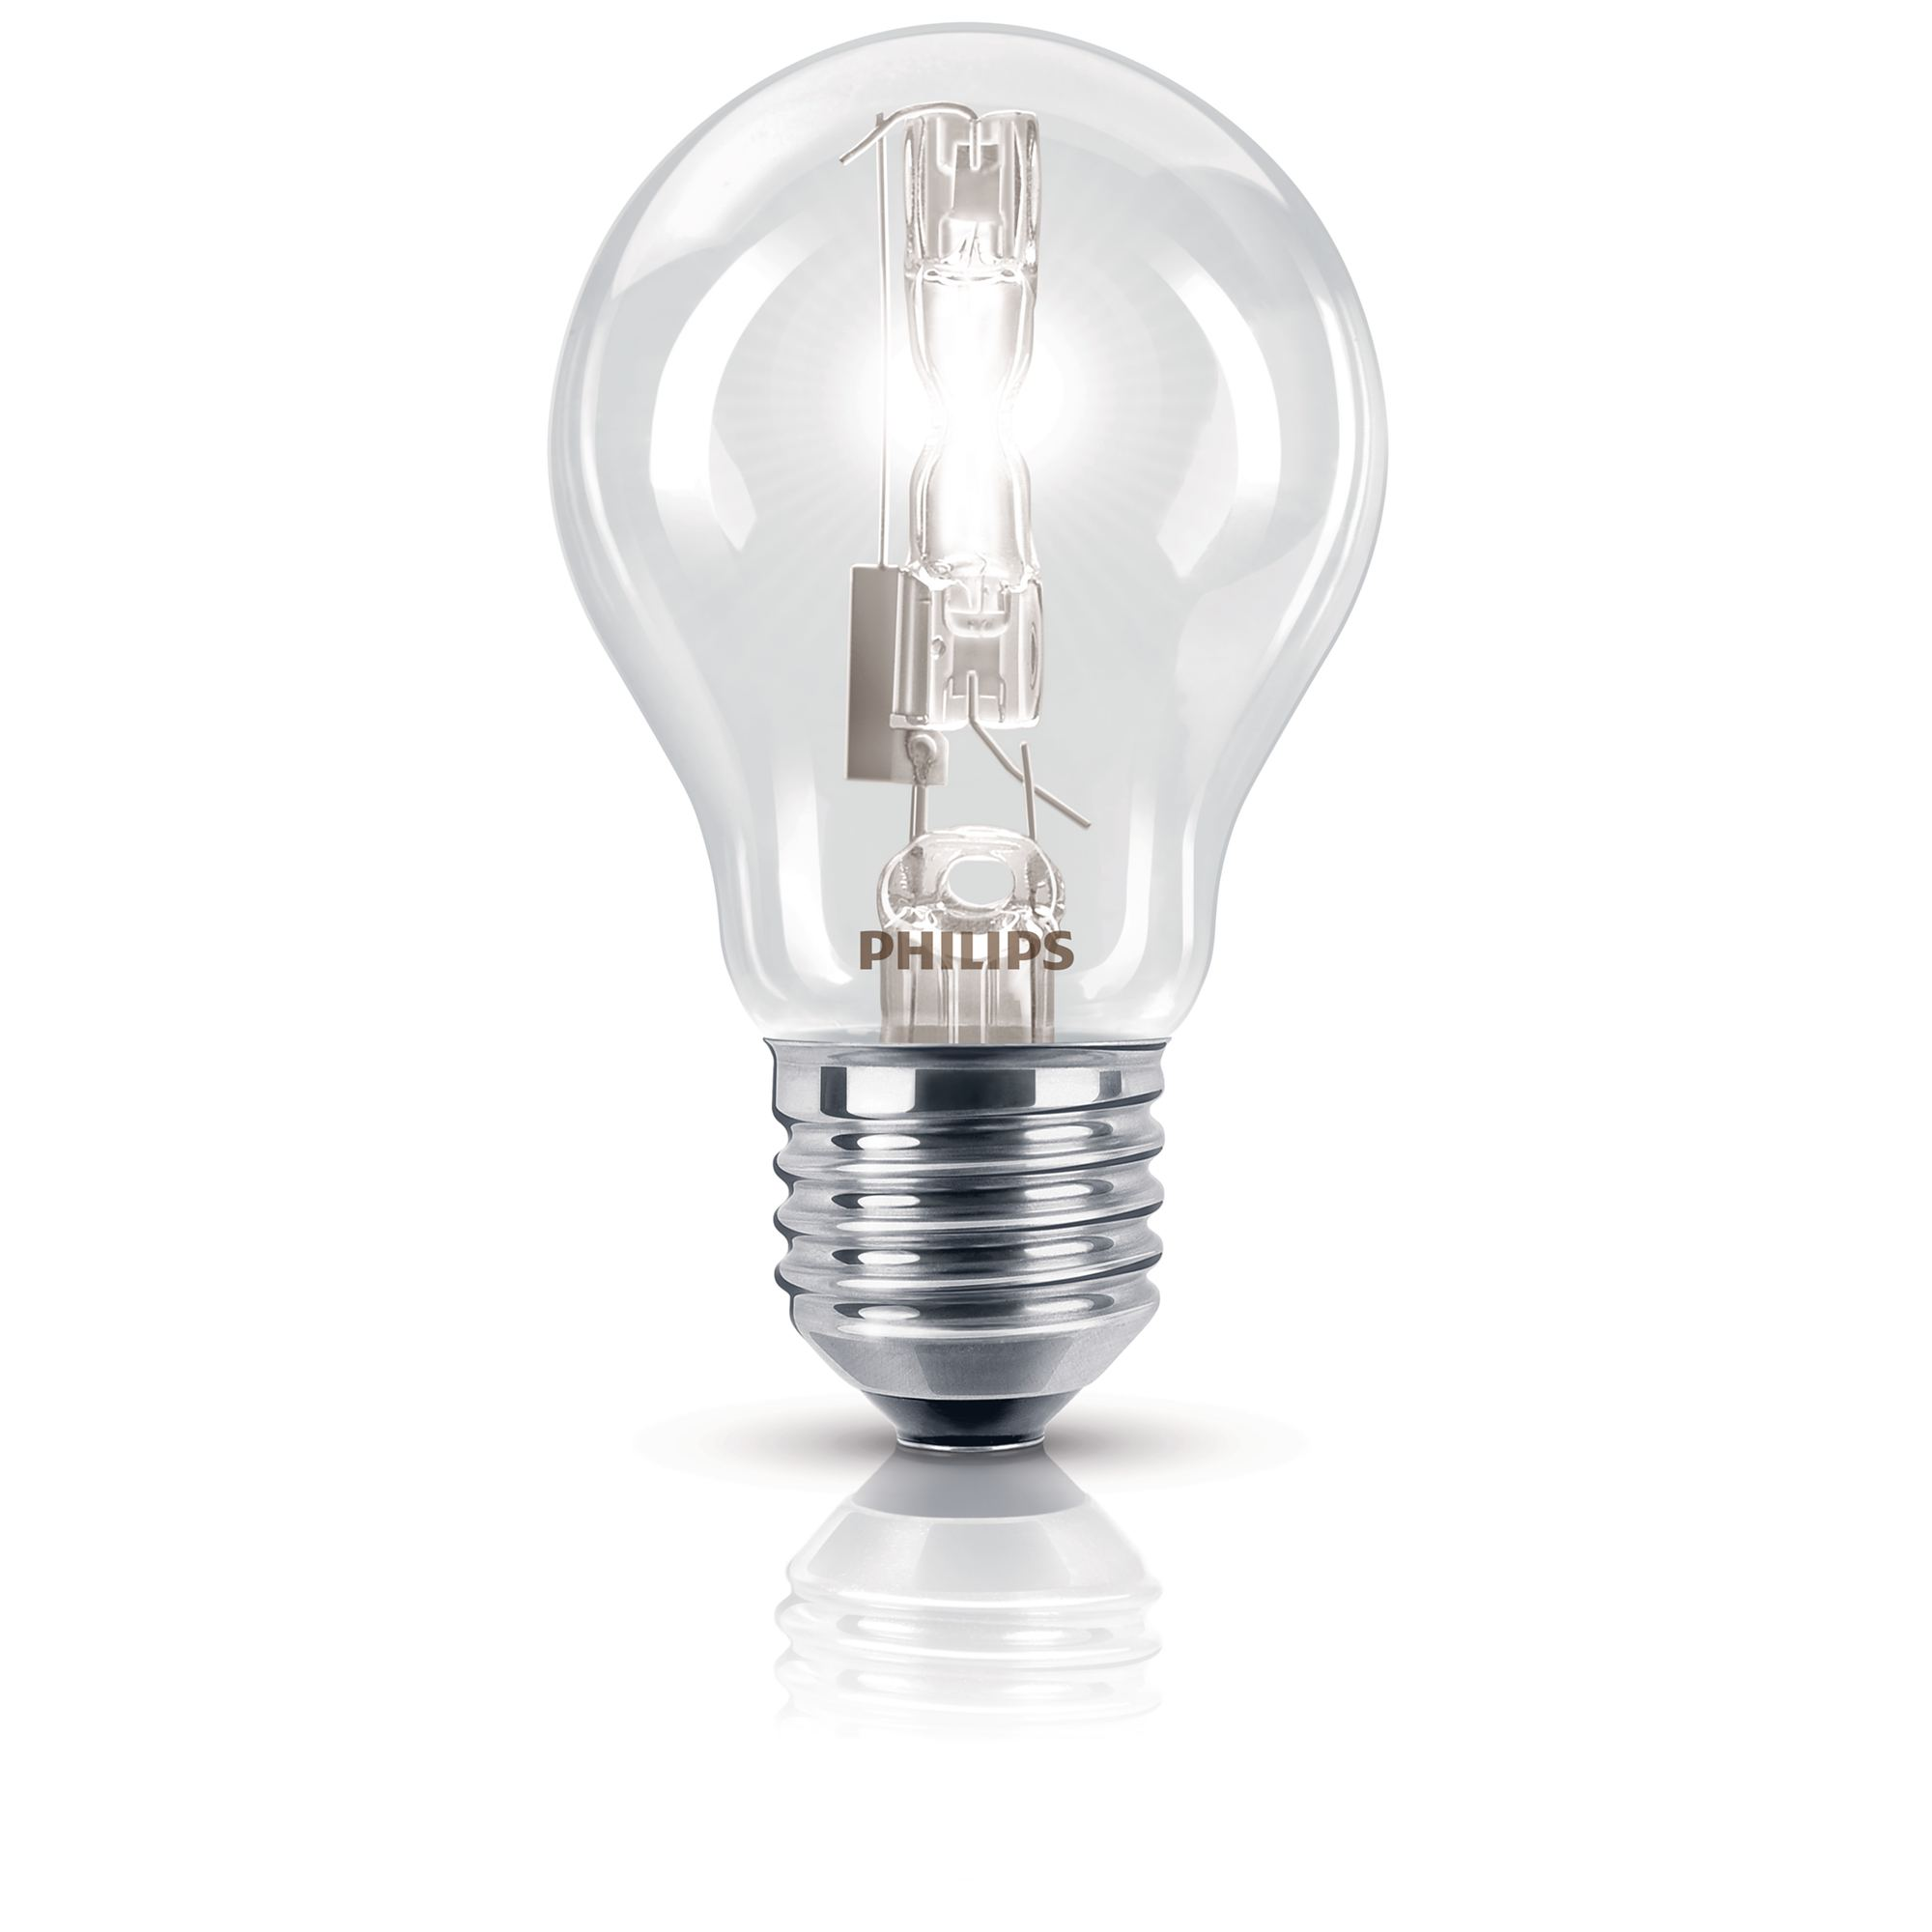 Philips 140W E27 monteret lys halogenlampe